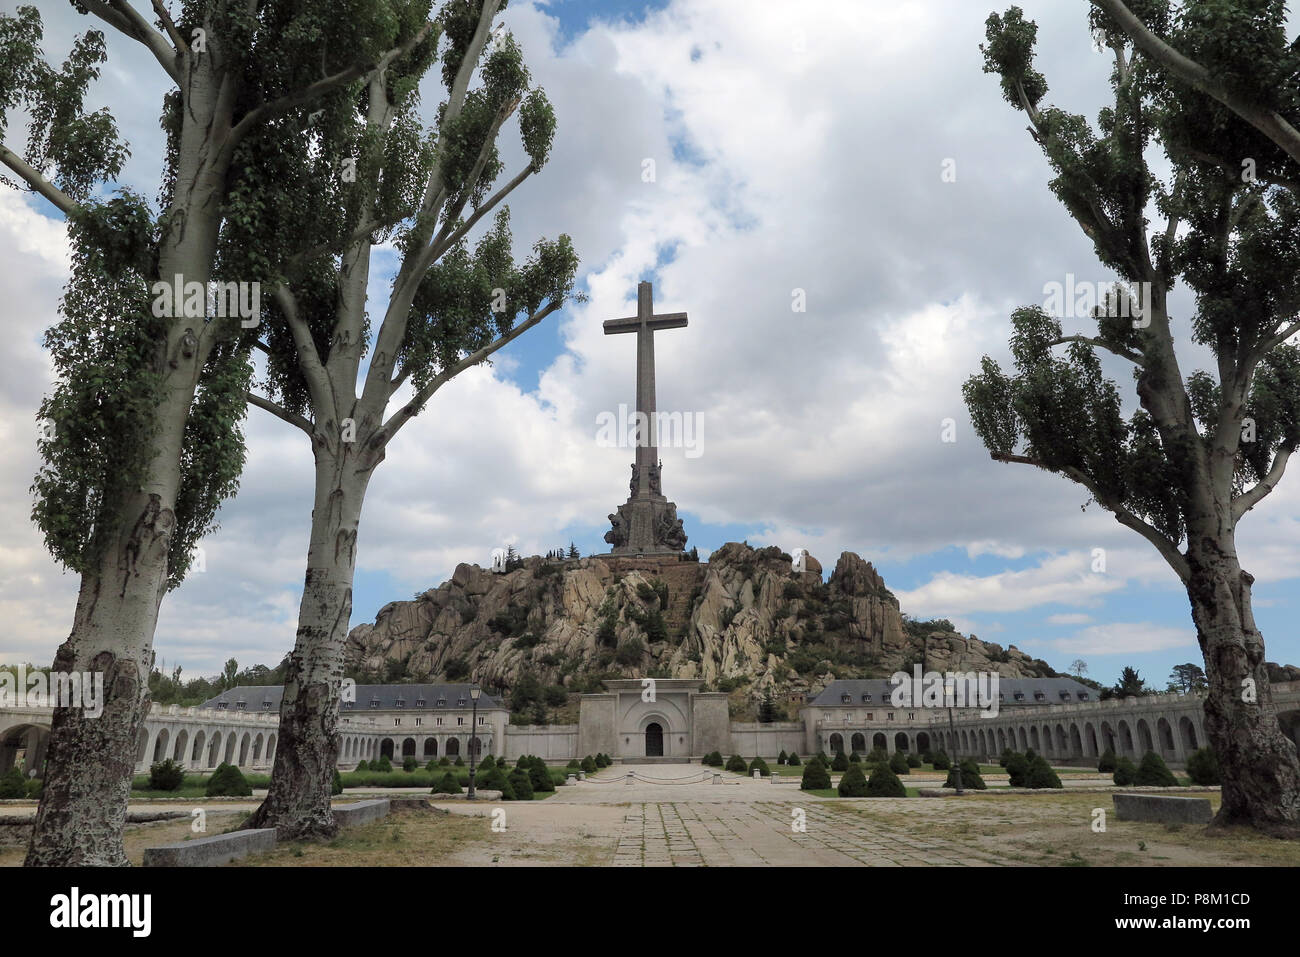 FILED - 05 July 2018, Spain, El Escorial: A 155 metres high and 44 metres wide concrete cross stands on the top of the Risco de la Nava behind the Benedictine abbey in the Valle de los Caidos (Valley of the Fallen). Inside the monument next to Cuelgamuros near El Escorial in the Sierra de Guadarrama lies the tomb of Spanish dictator Francisco Franco and the founder of the fascist movement Falange, José Antonio Primo de Rivera. It is known as one of the largest newer mausoleums of the world and the most important architectural symbol of Franco's dictatorship. Next to the basilica, in a shrine, Stock Photo